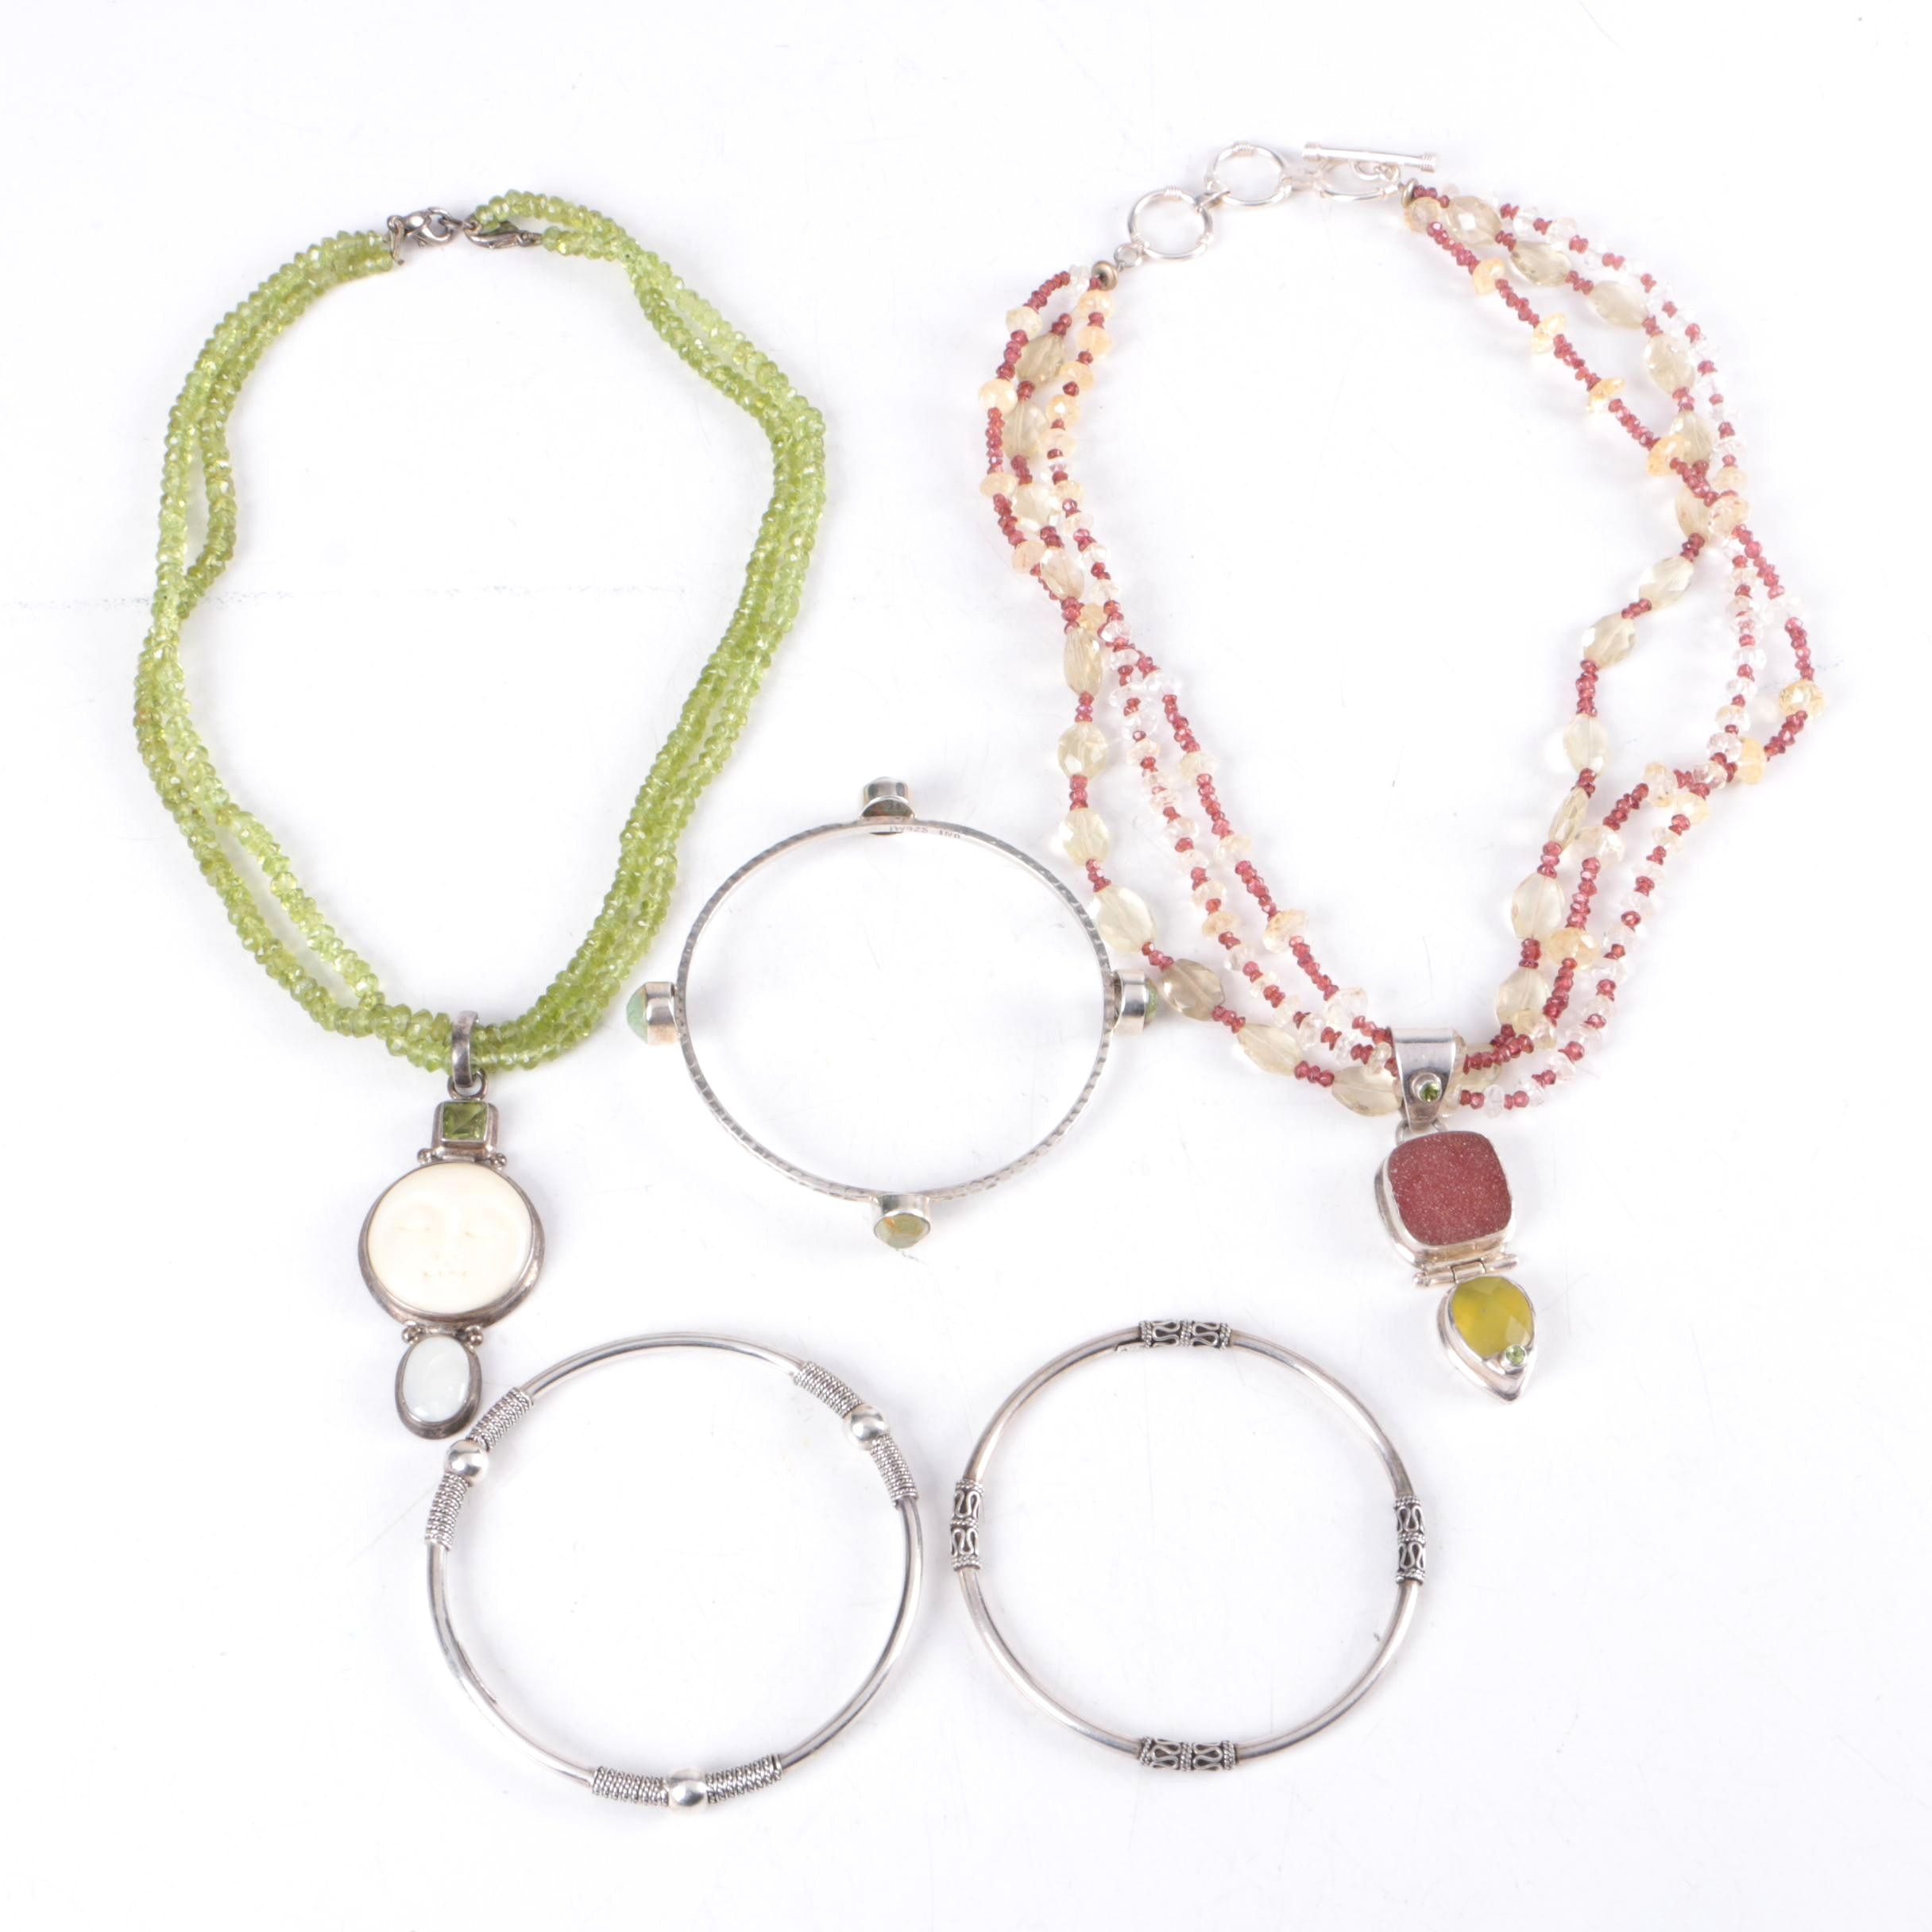 Sterling Silver Necklace and Bracelet Selection Including Peridot and Citrine